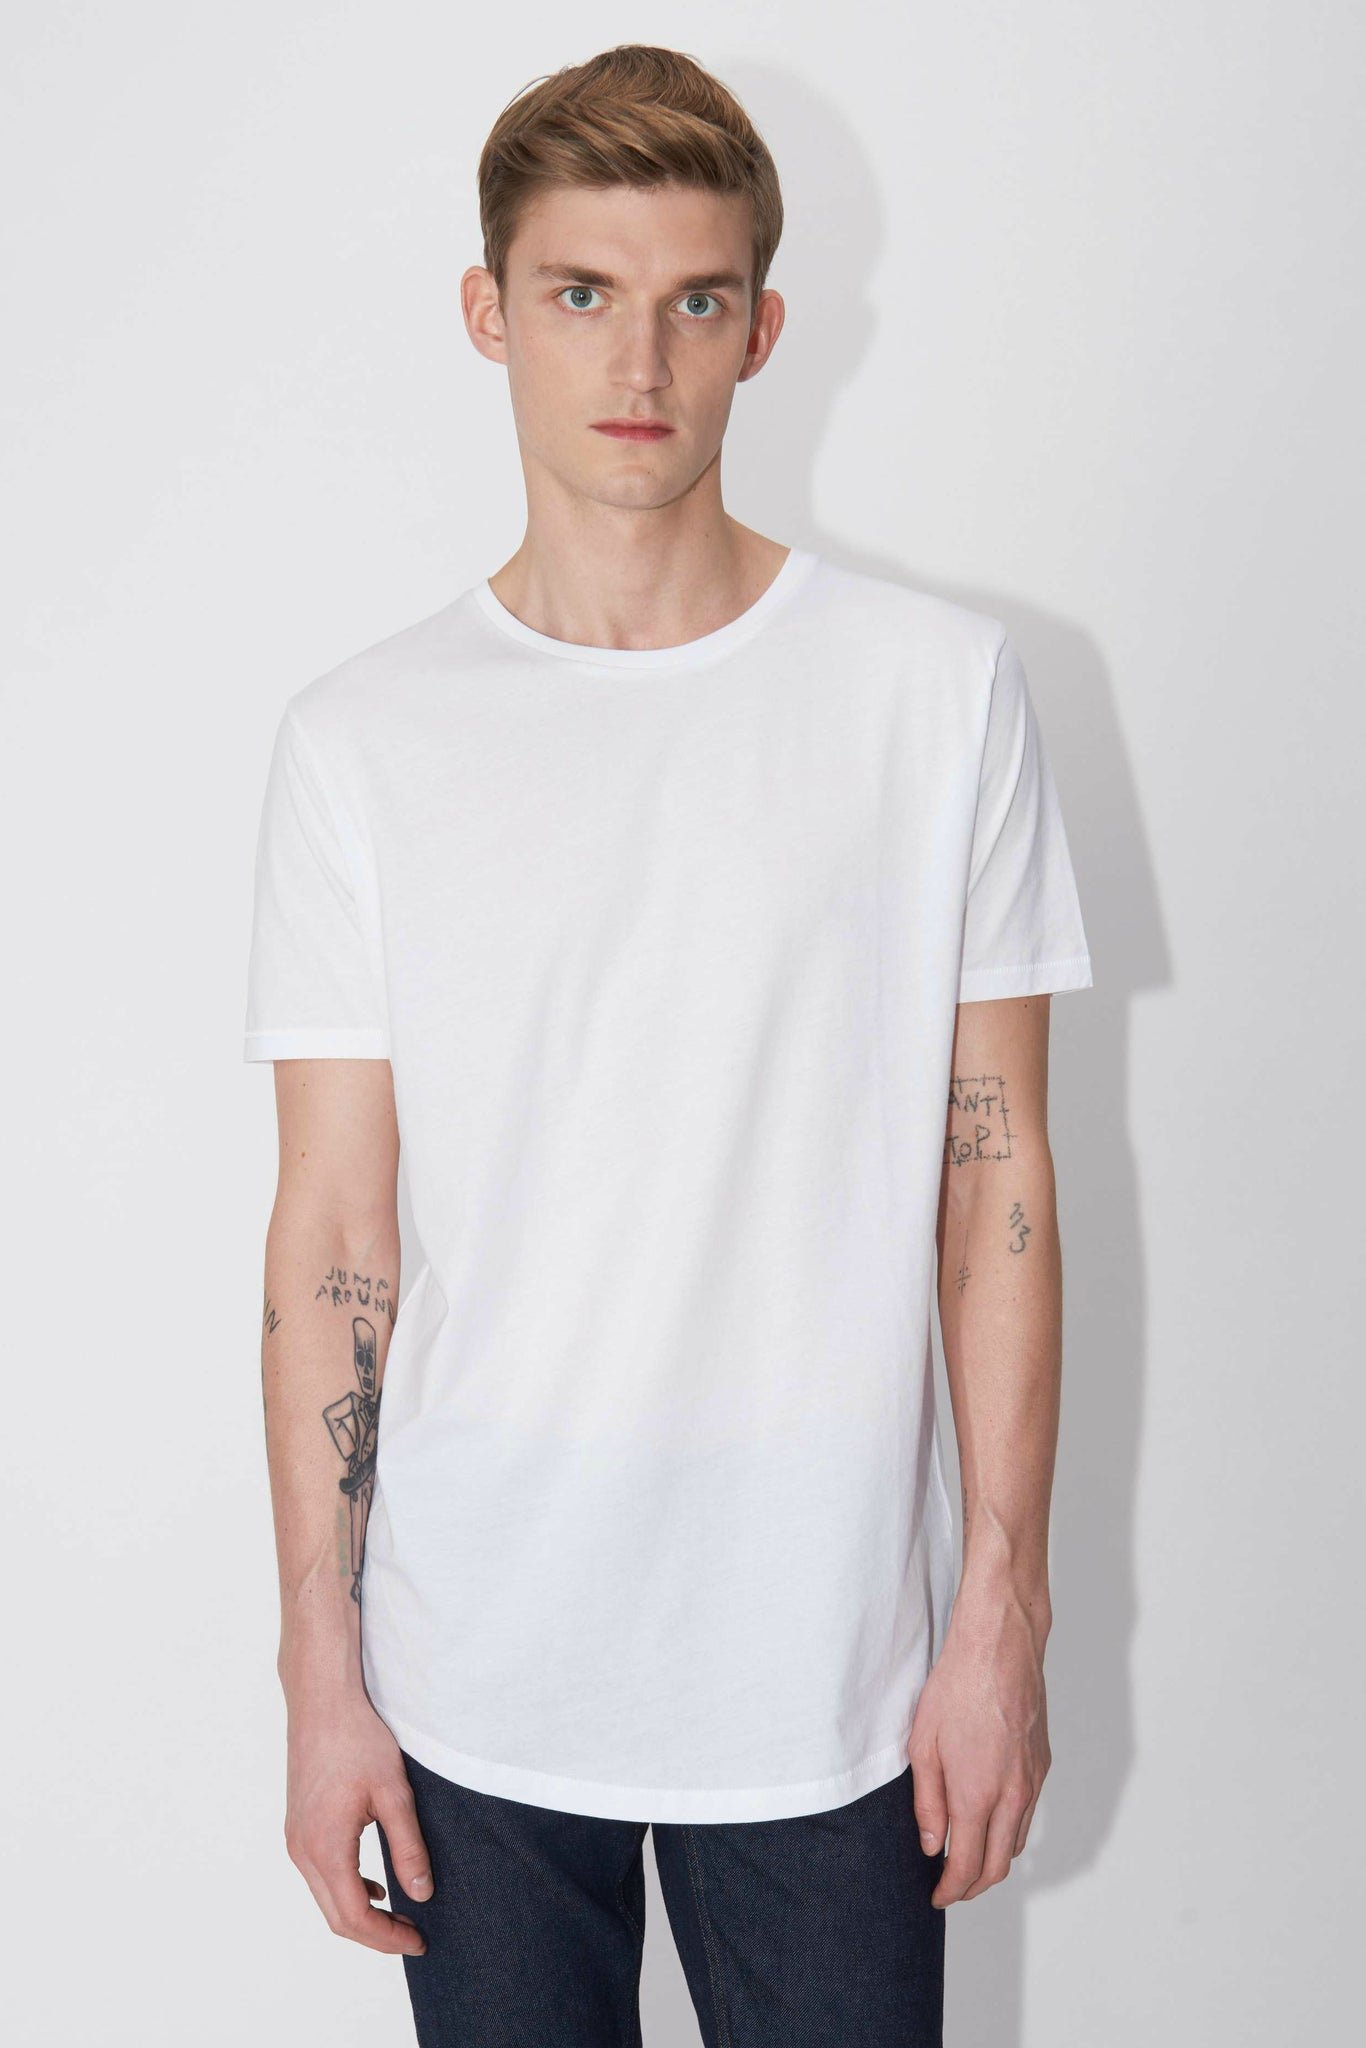 Tiger of Sweden Corey Sol t-shirt white | INCH webshop